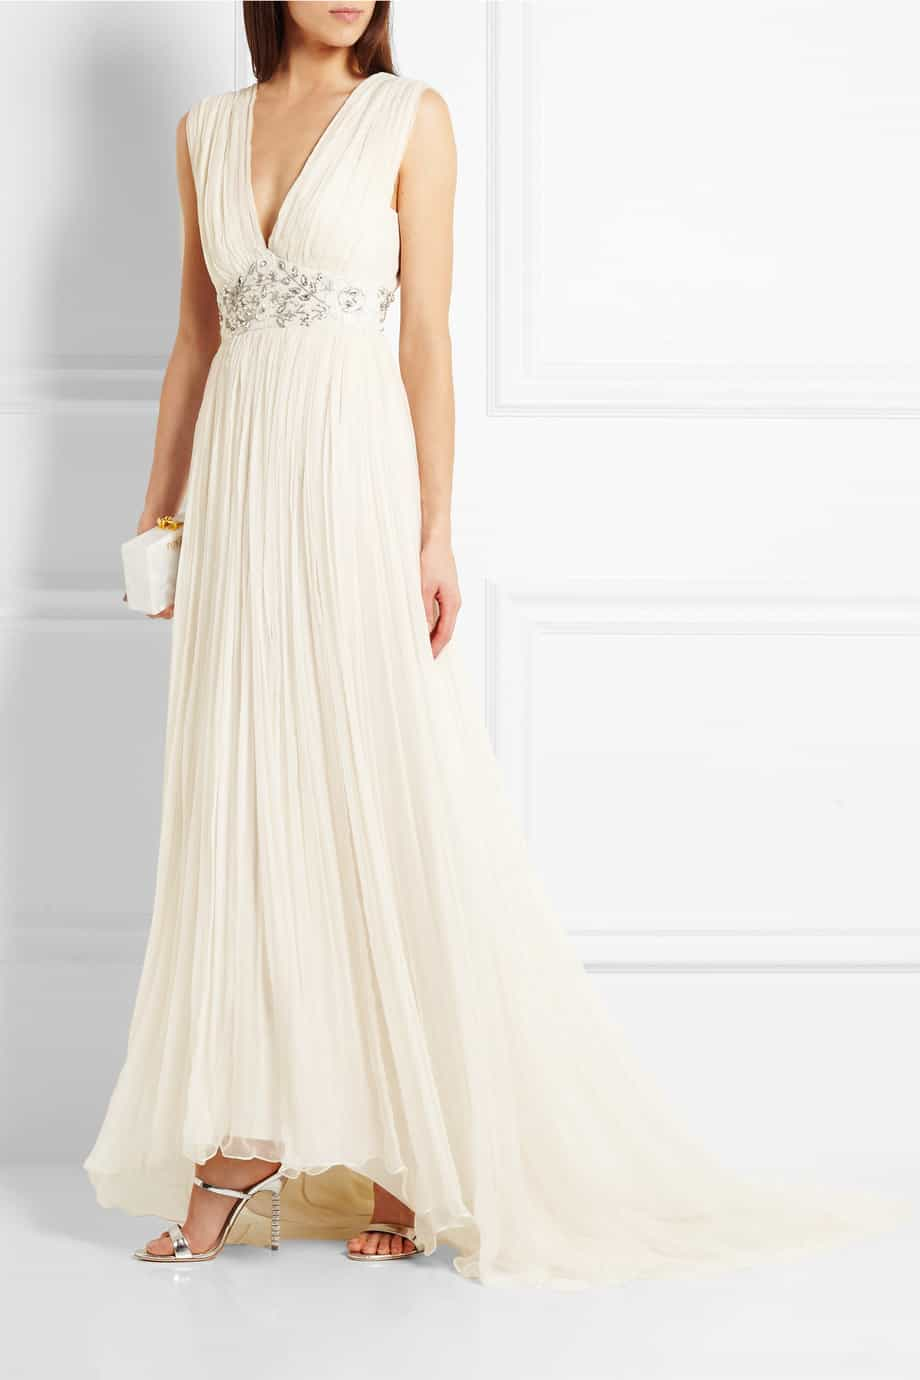 Le Meilleur 13 Best Online Shops To Buy An Affordable Wedding Dress Ce Mois Ci